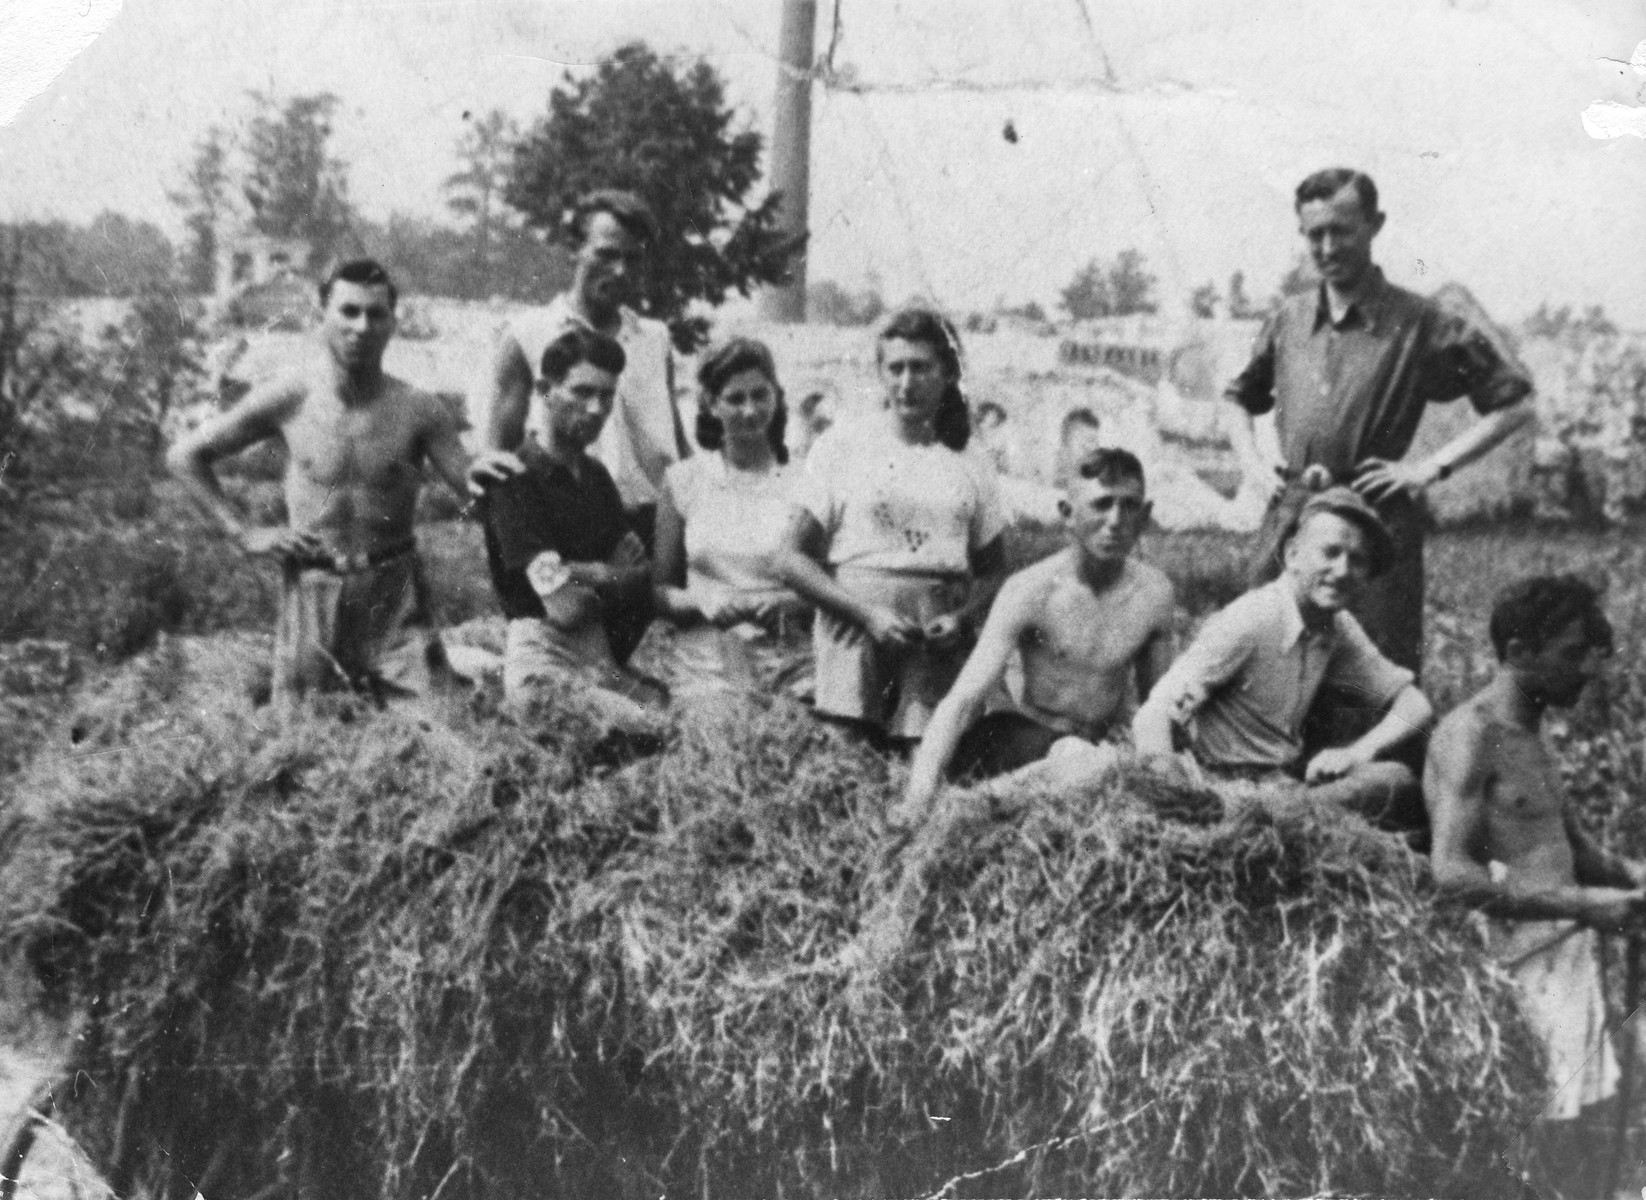 Members of the Hashomer Hatzair Zionist collective in Zarki ride on a hay wagon on their farm.    Pictured from left to right are Motek Weinrib, Srulek Warszawski, unidentified, Lodzia Hamersztajn, Chagit Elster, Lejzor Zborowski, unidentified, Arie Wilner and Avram Zilbersztajn.  The photo was taken during the visit of Arie Wilner.